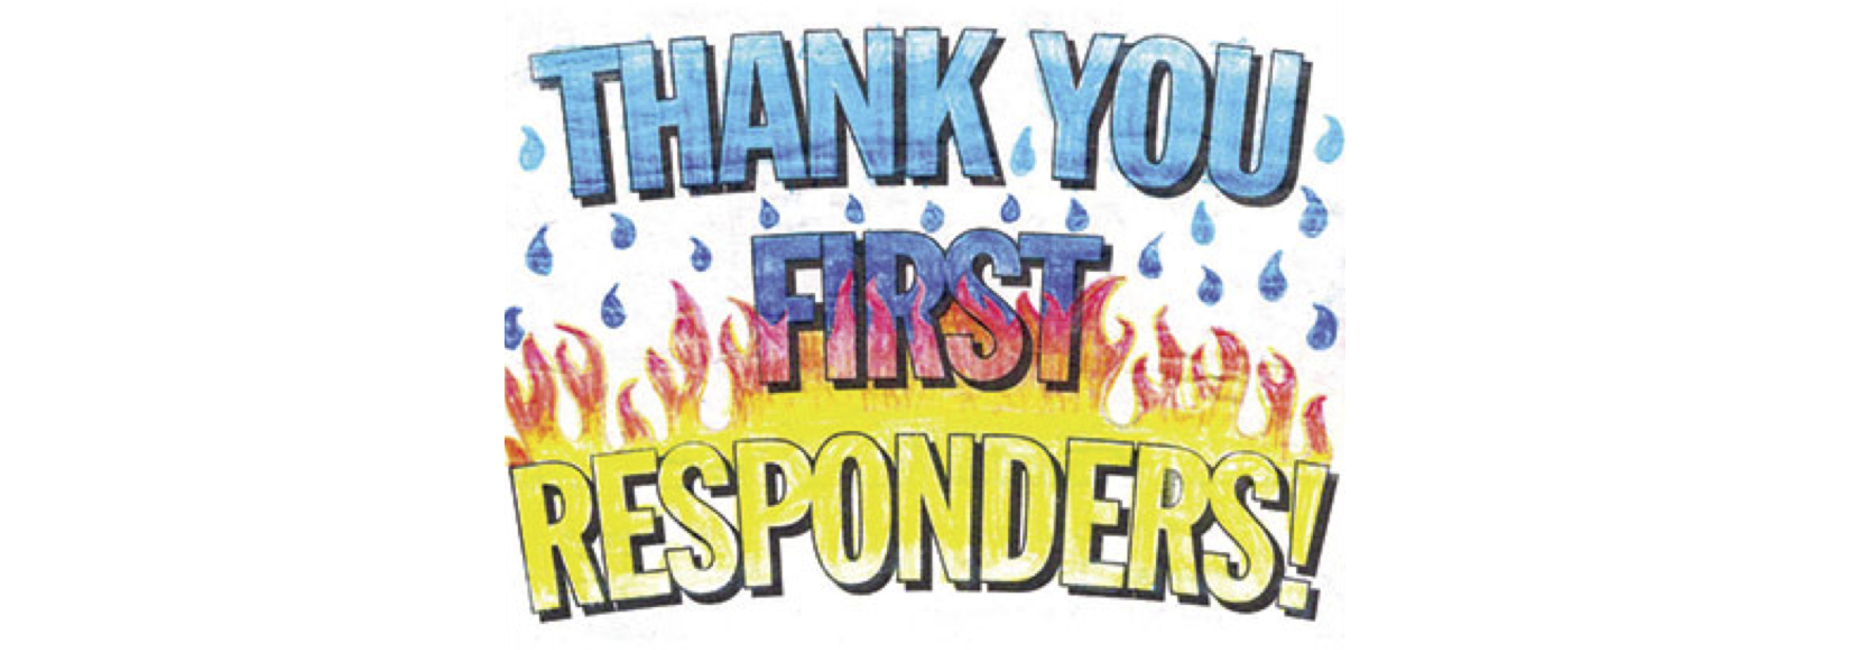 a thank you to first responders